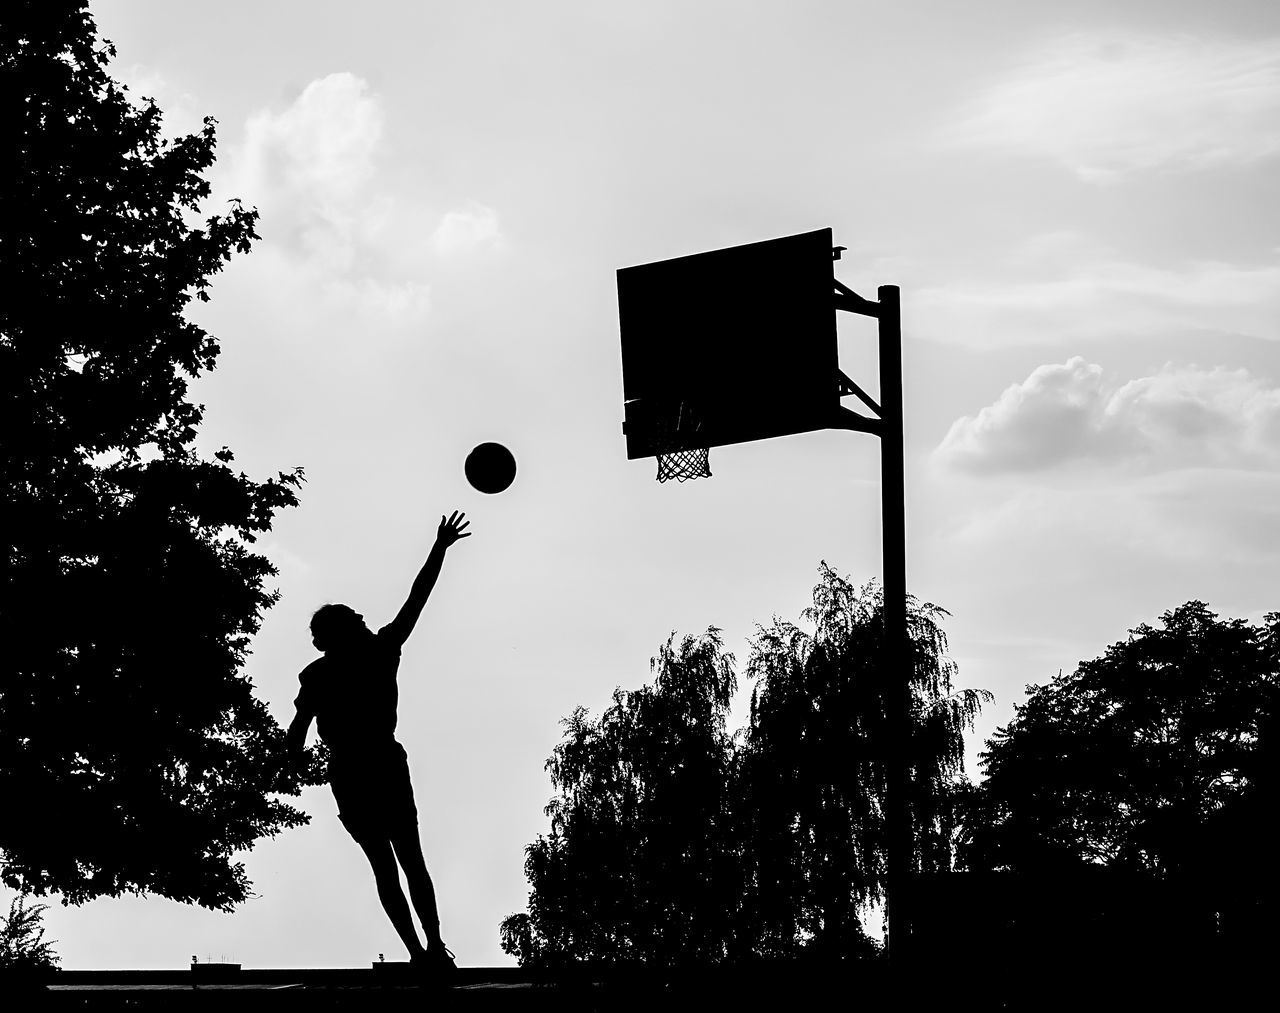 Basketball Blackandwhite Capture The Moment Fly Flying I Love This Game Low Angle View My Fuckin Berlin Outdoors Real Berlin Real People Silhouette Sport In The City Sports Photography Street Street Light Streetphotography Summer Sun Tempelhofer Feld Tree The Street Photographer - 2016 EyeEm Awards